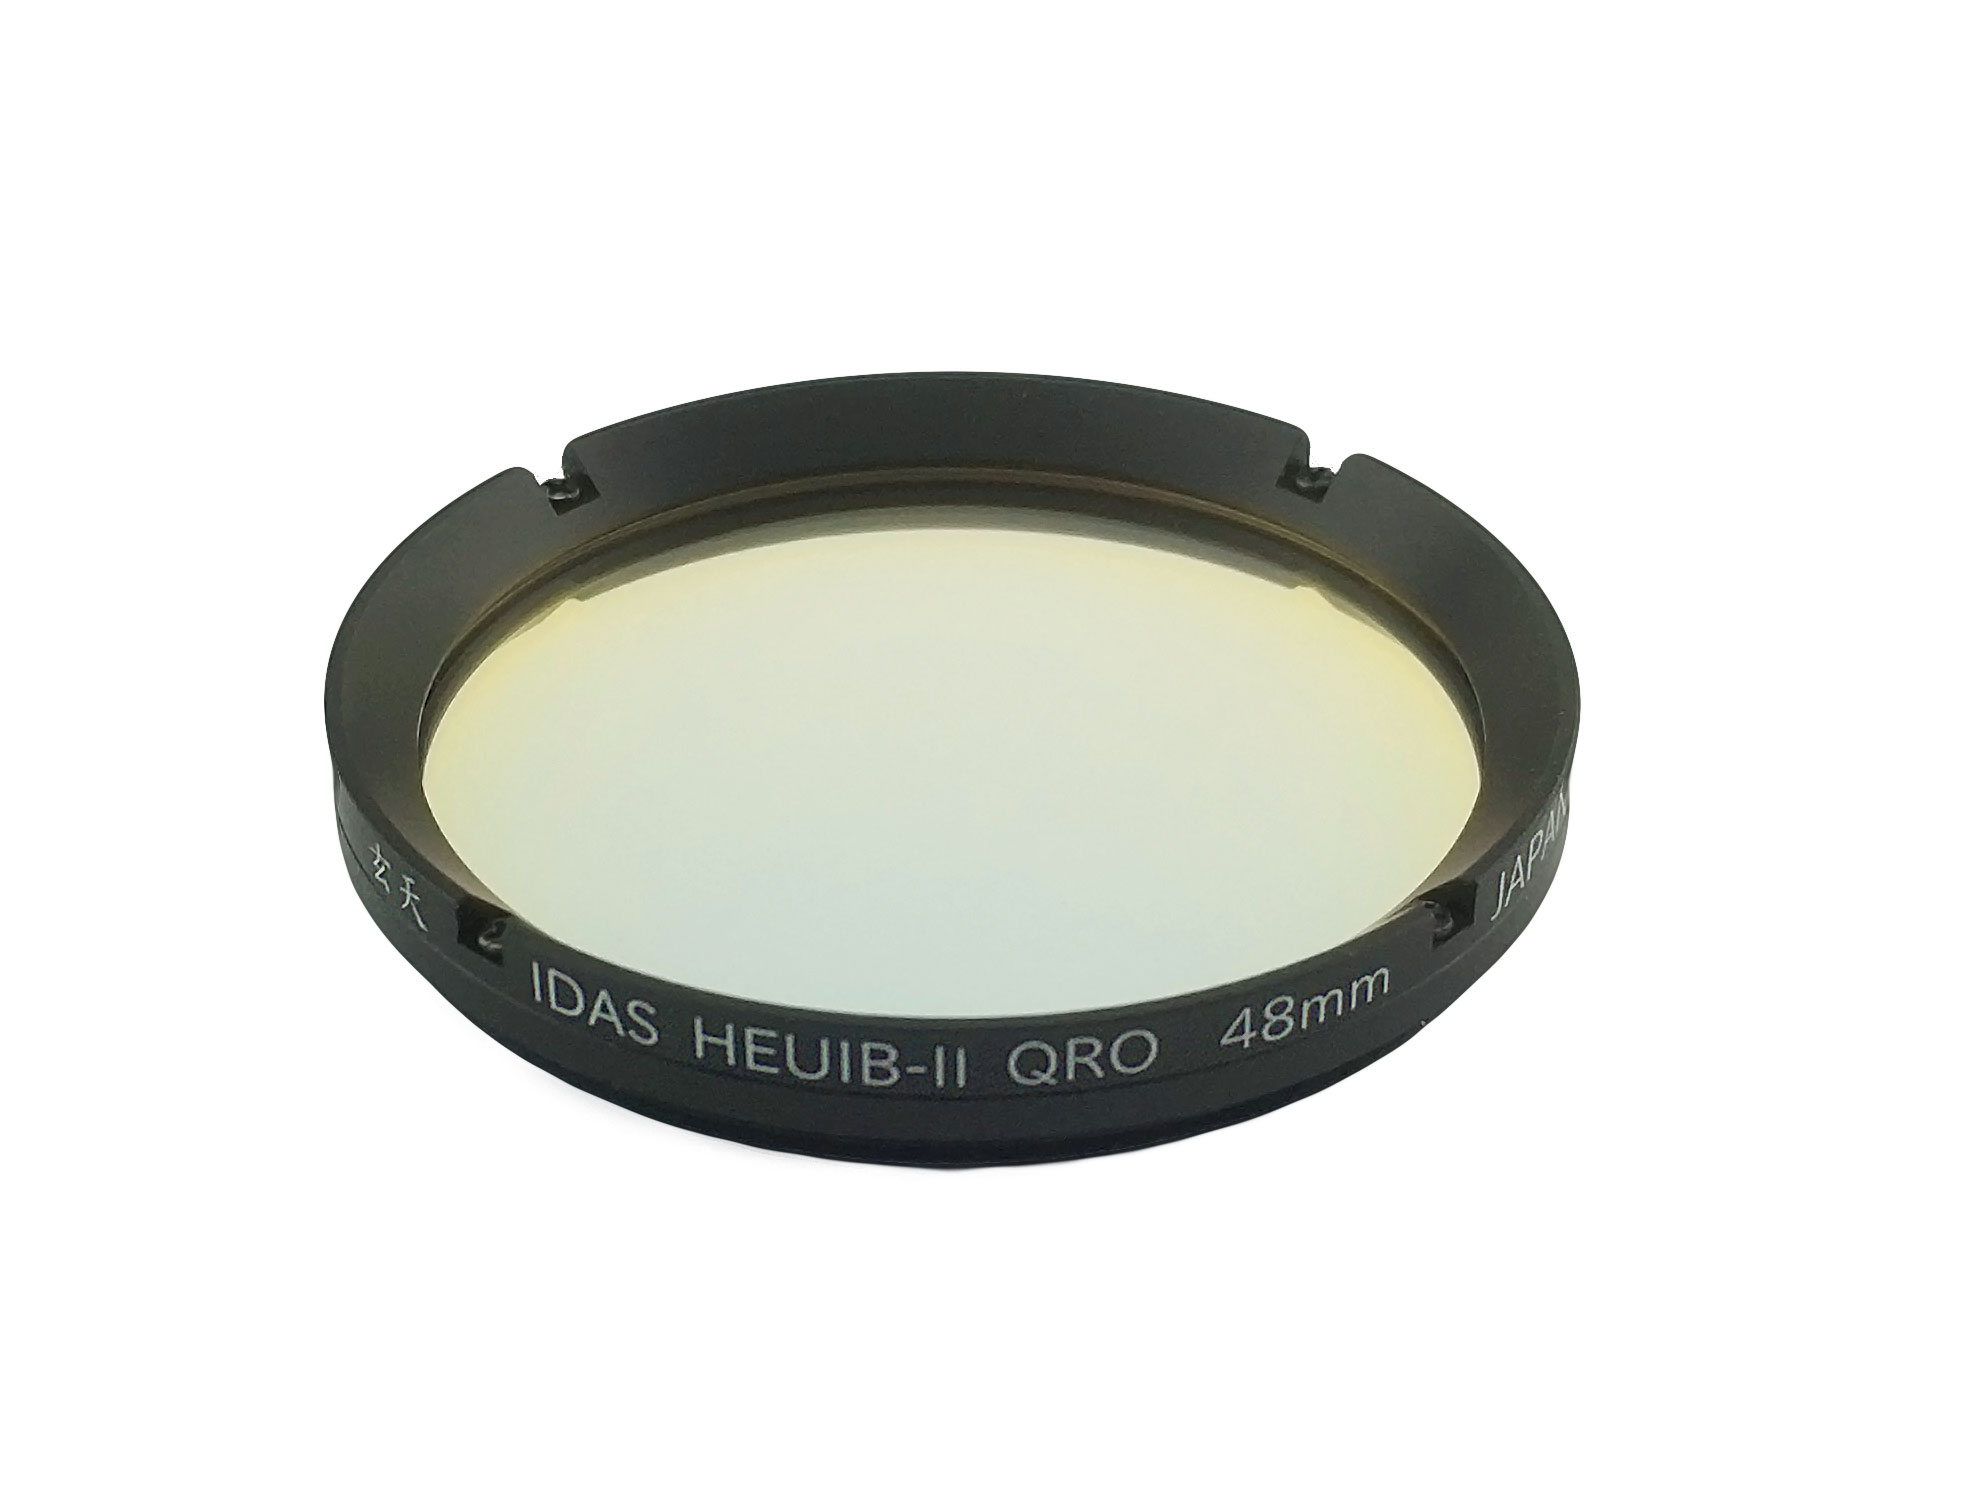 IDAS HEUIB-II QRO UV/IR Blocking Filter